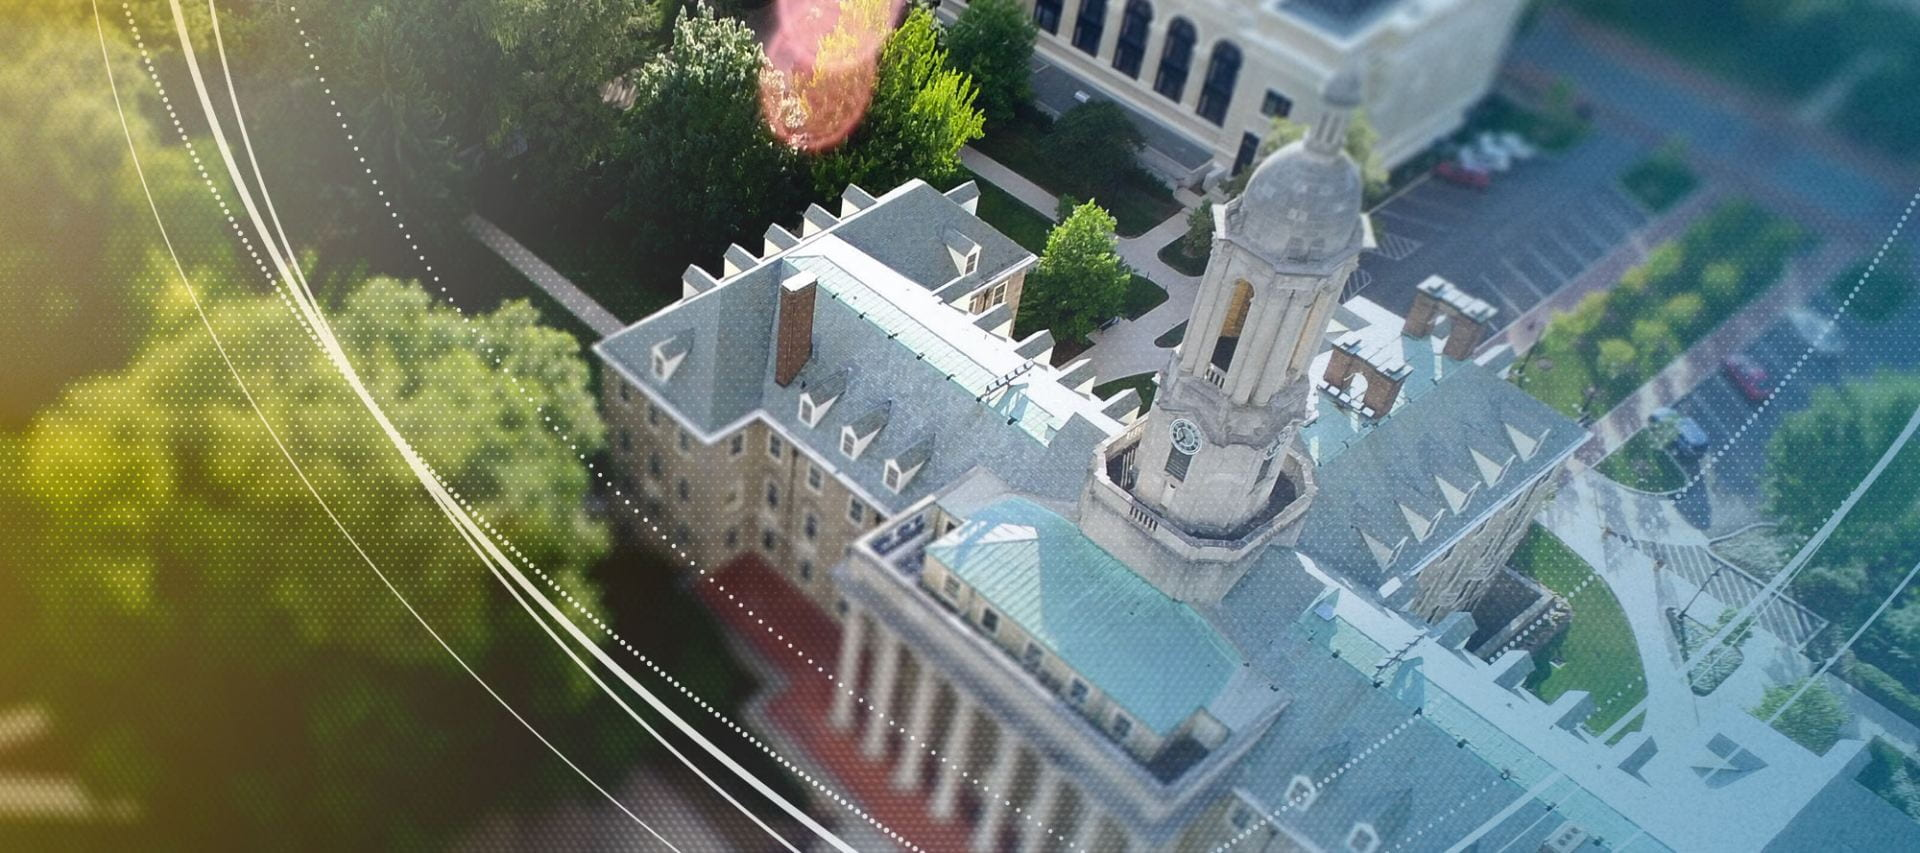 Penn State's Old Main building viewed from above via a drone.